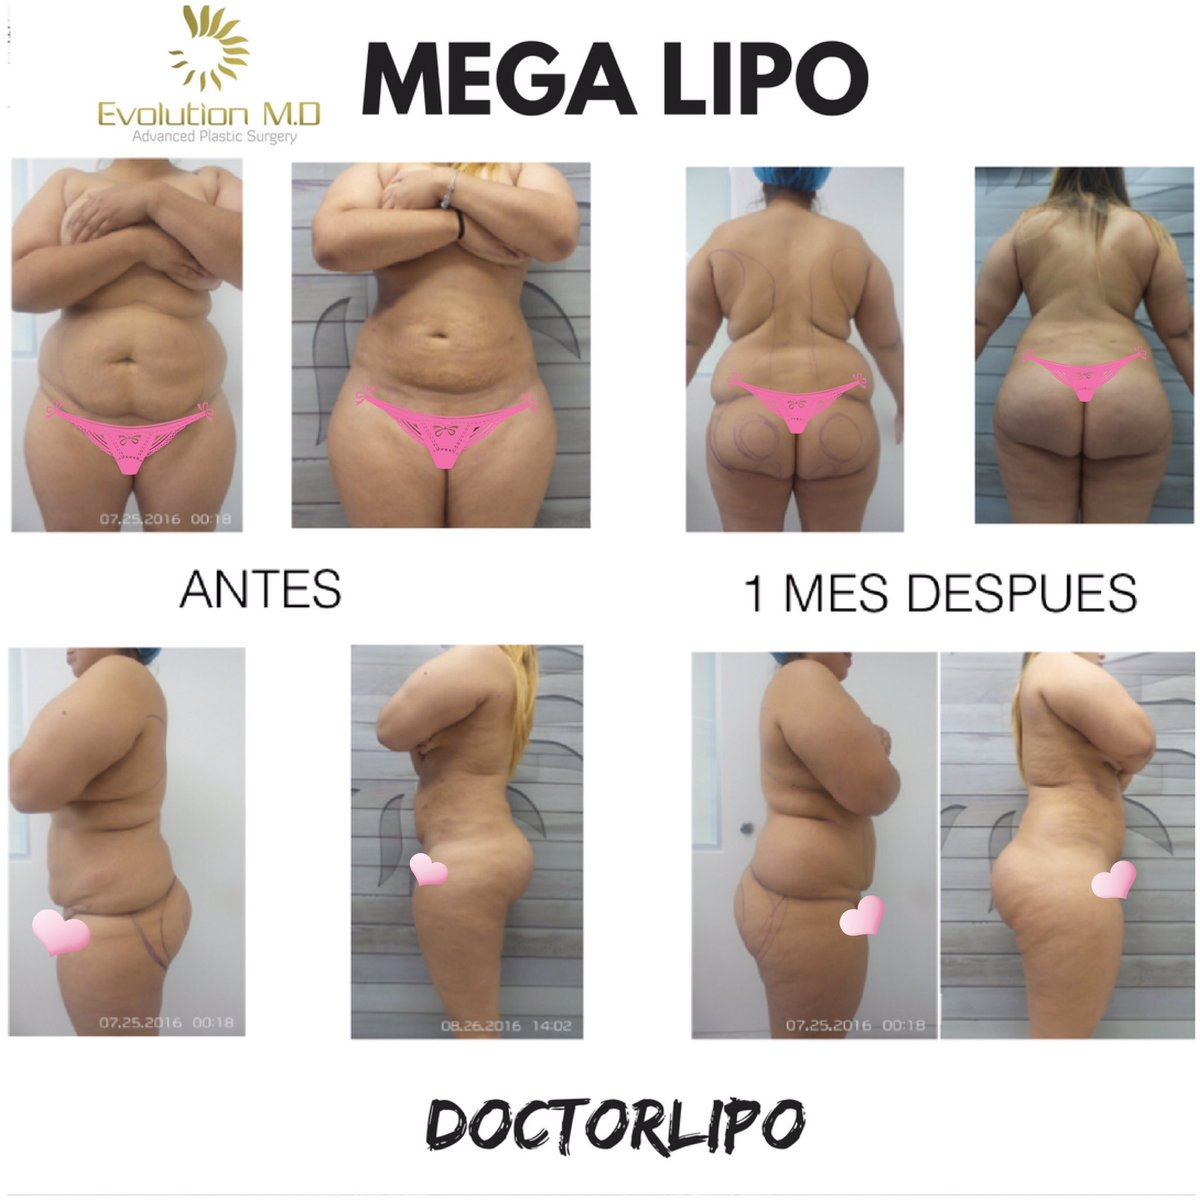 Mega liposuction